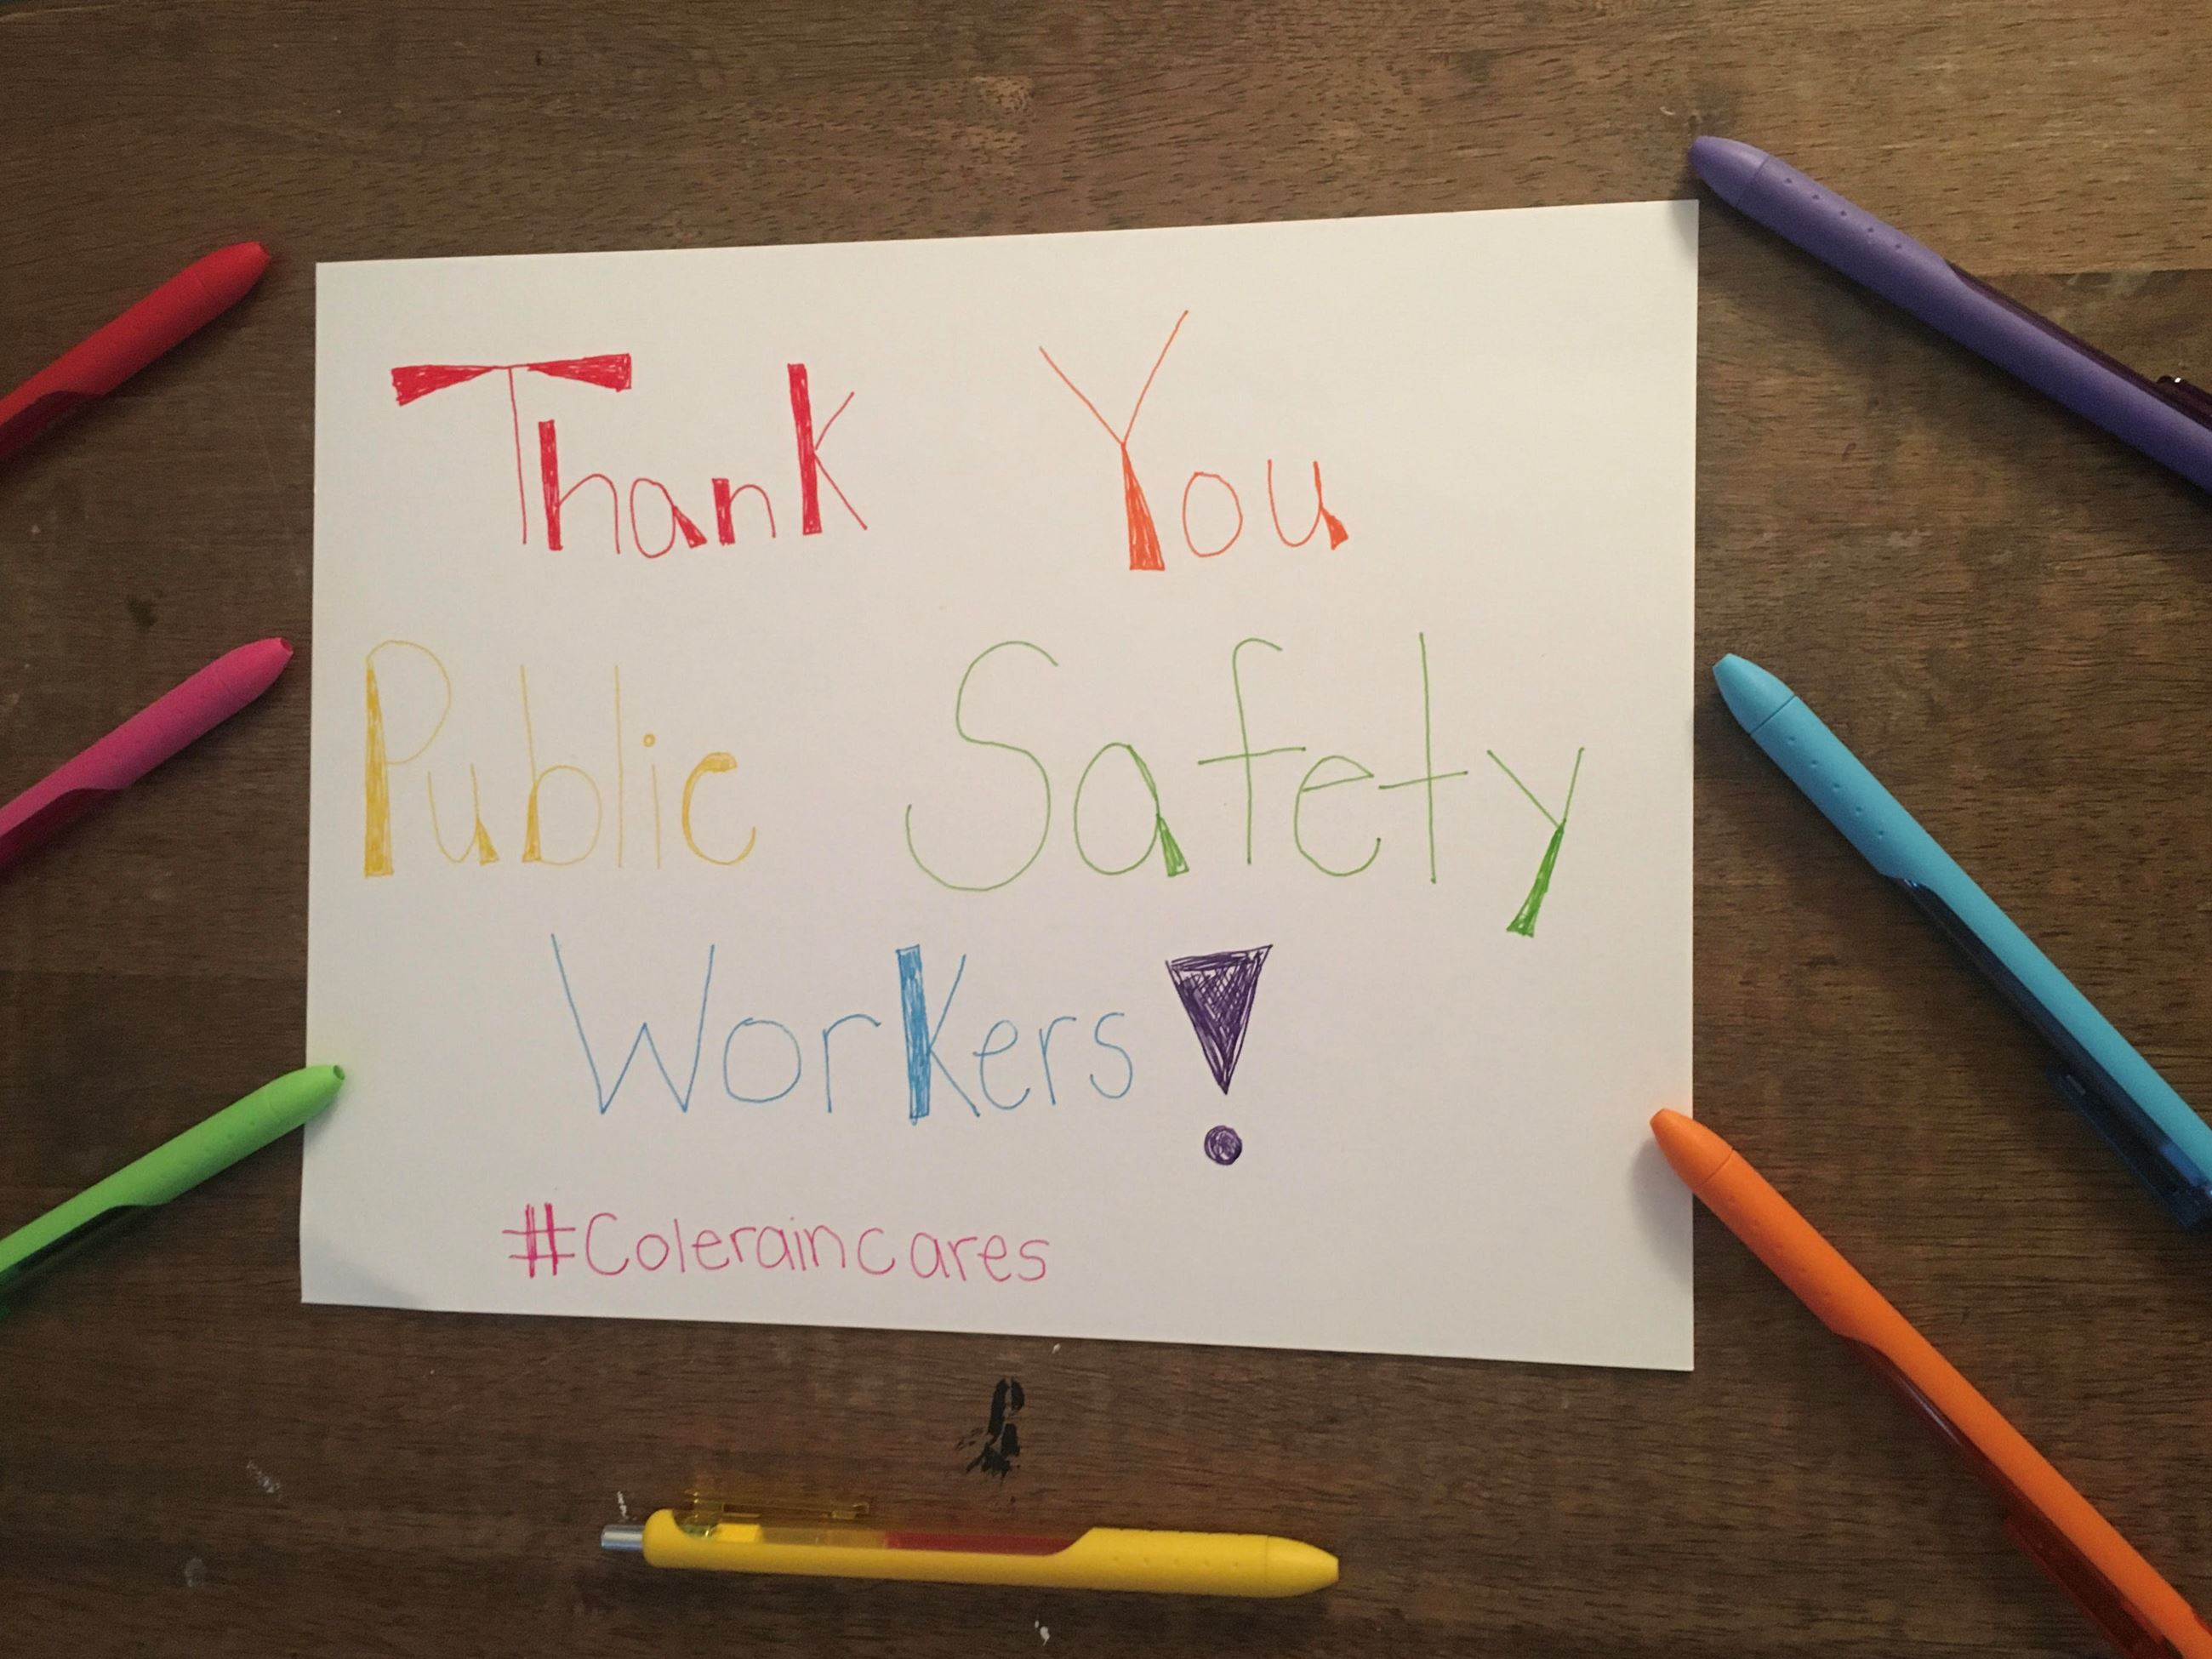 public safety workers thanks